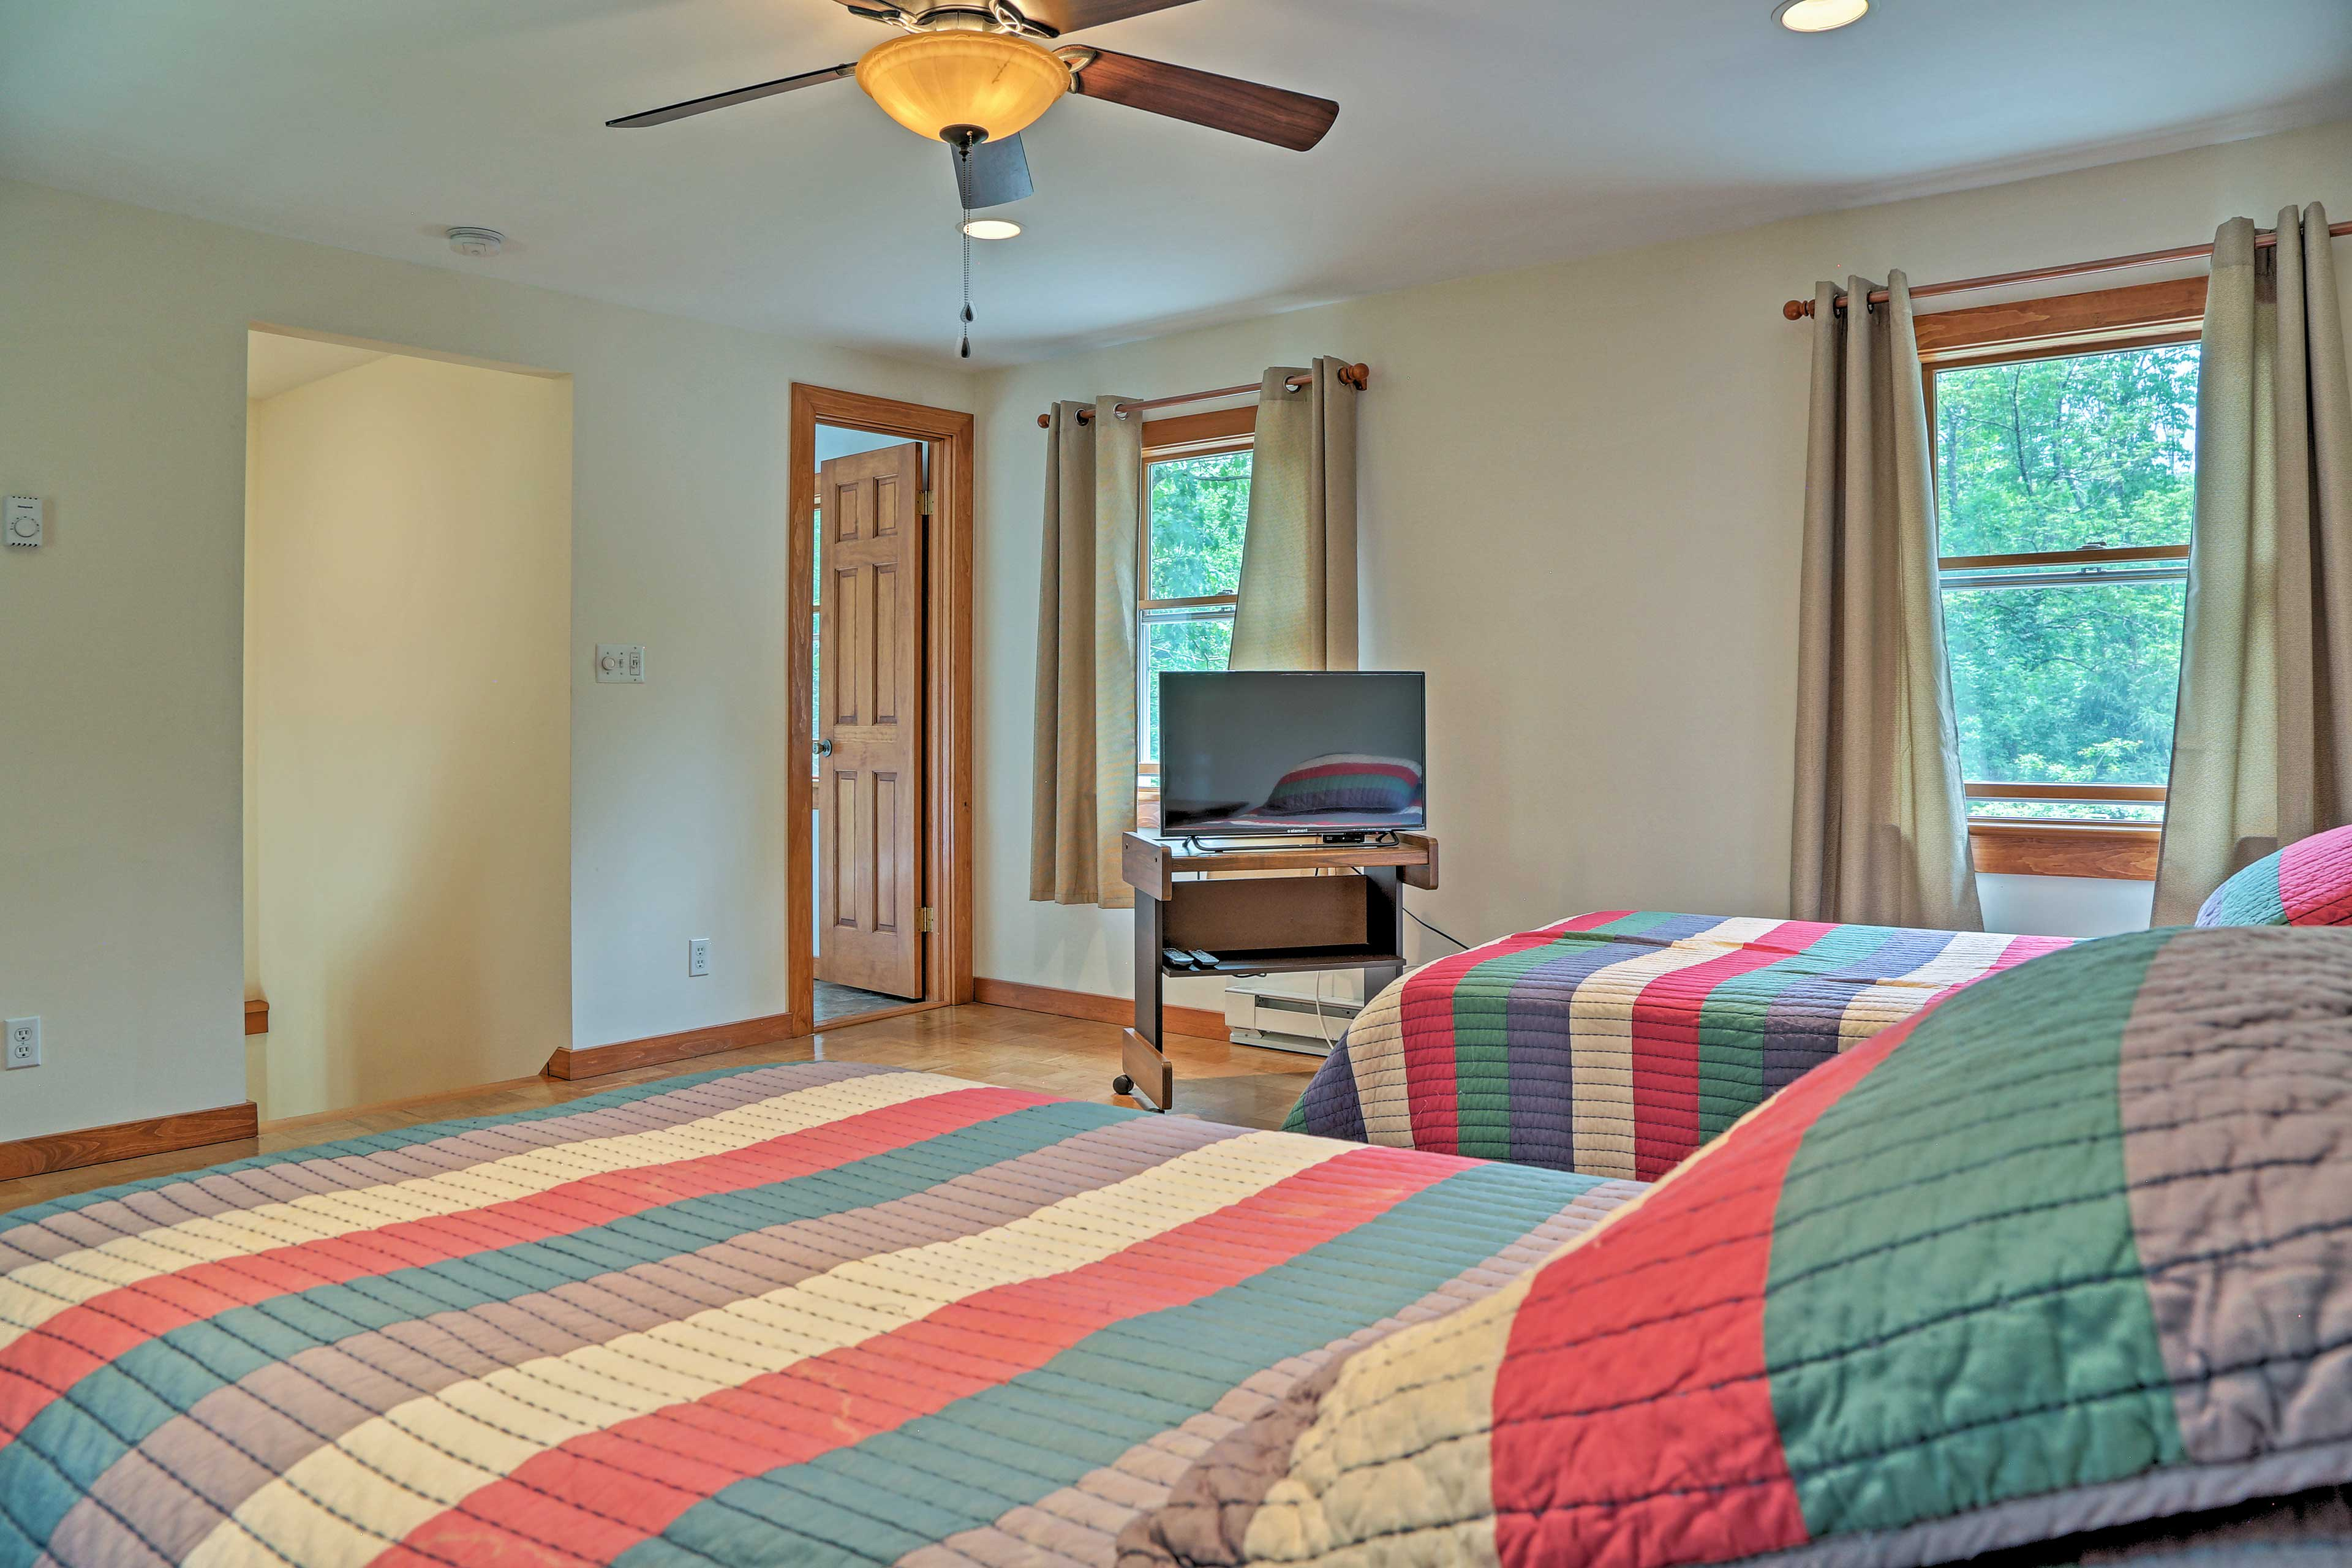 With 2 twin beds, this room comfortably sleeps 2 guests.